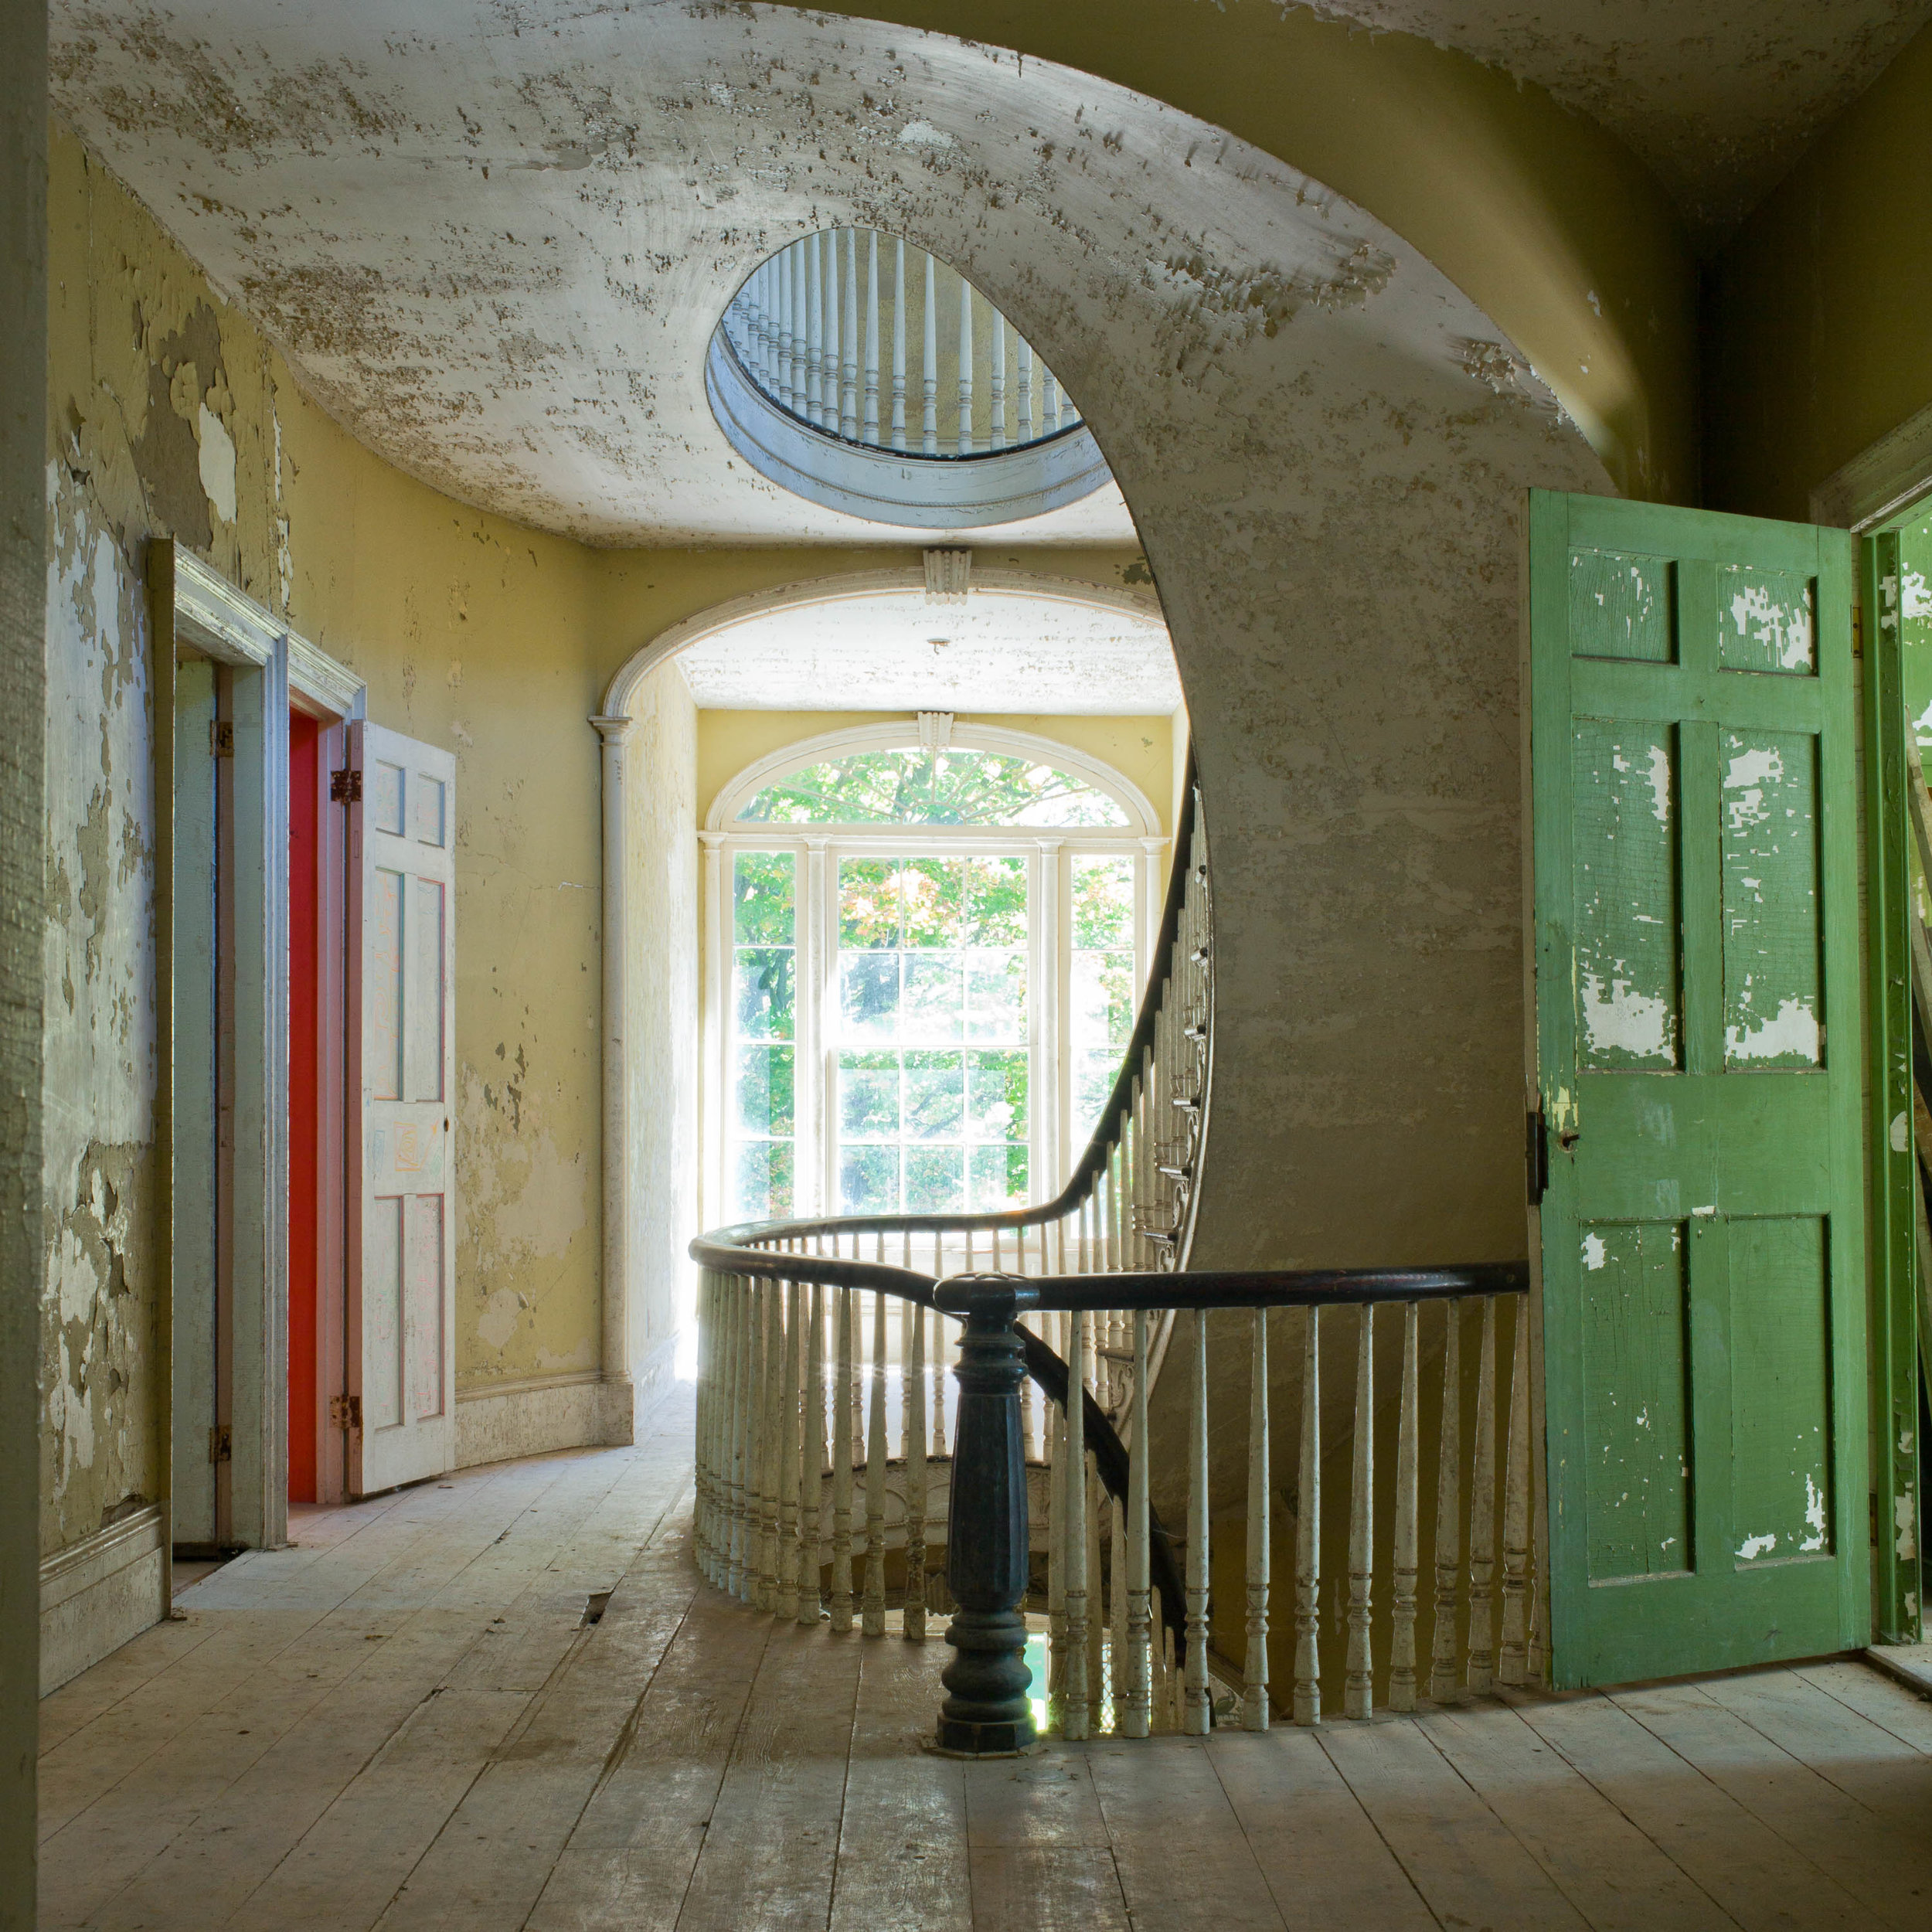 "Green Door, 2013, archival inkjet print, 28.5"" x 28.5"" unframed"